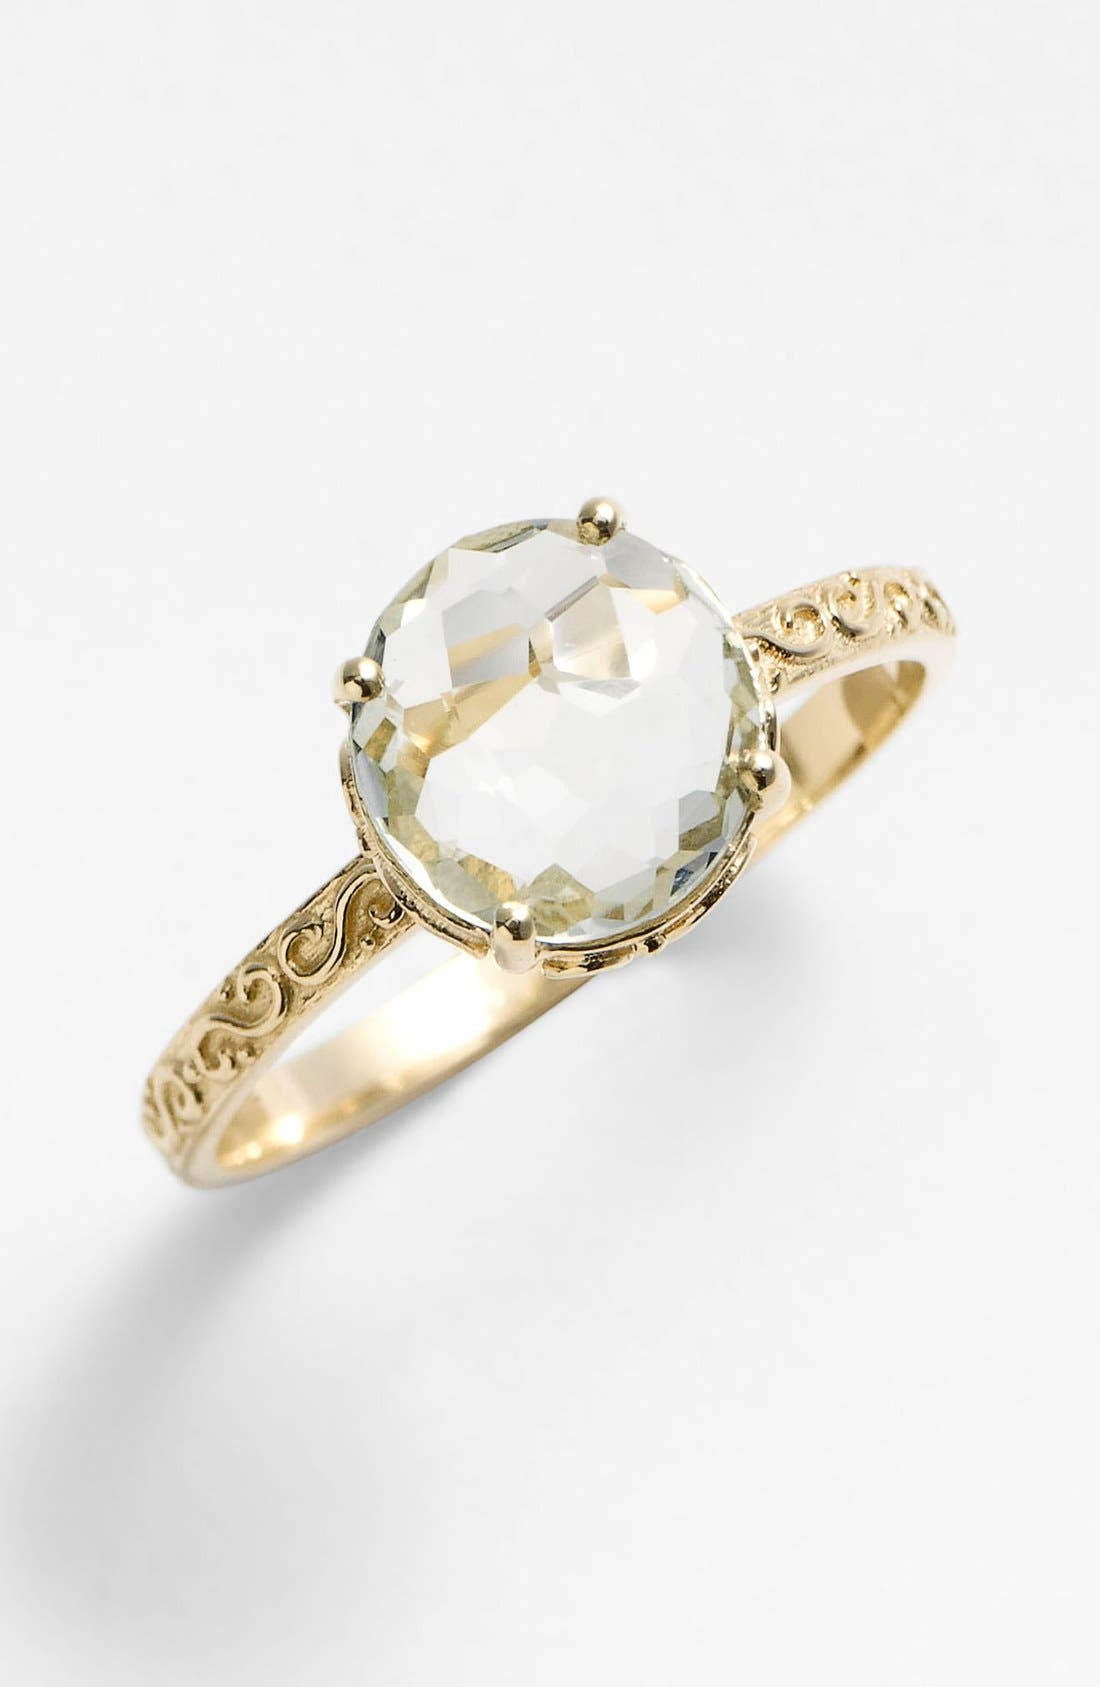 Main Image - KALAN by Suzanne Kalan Round Stone Filigree Ring